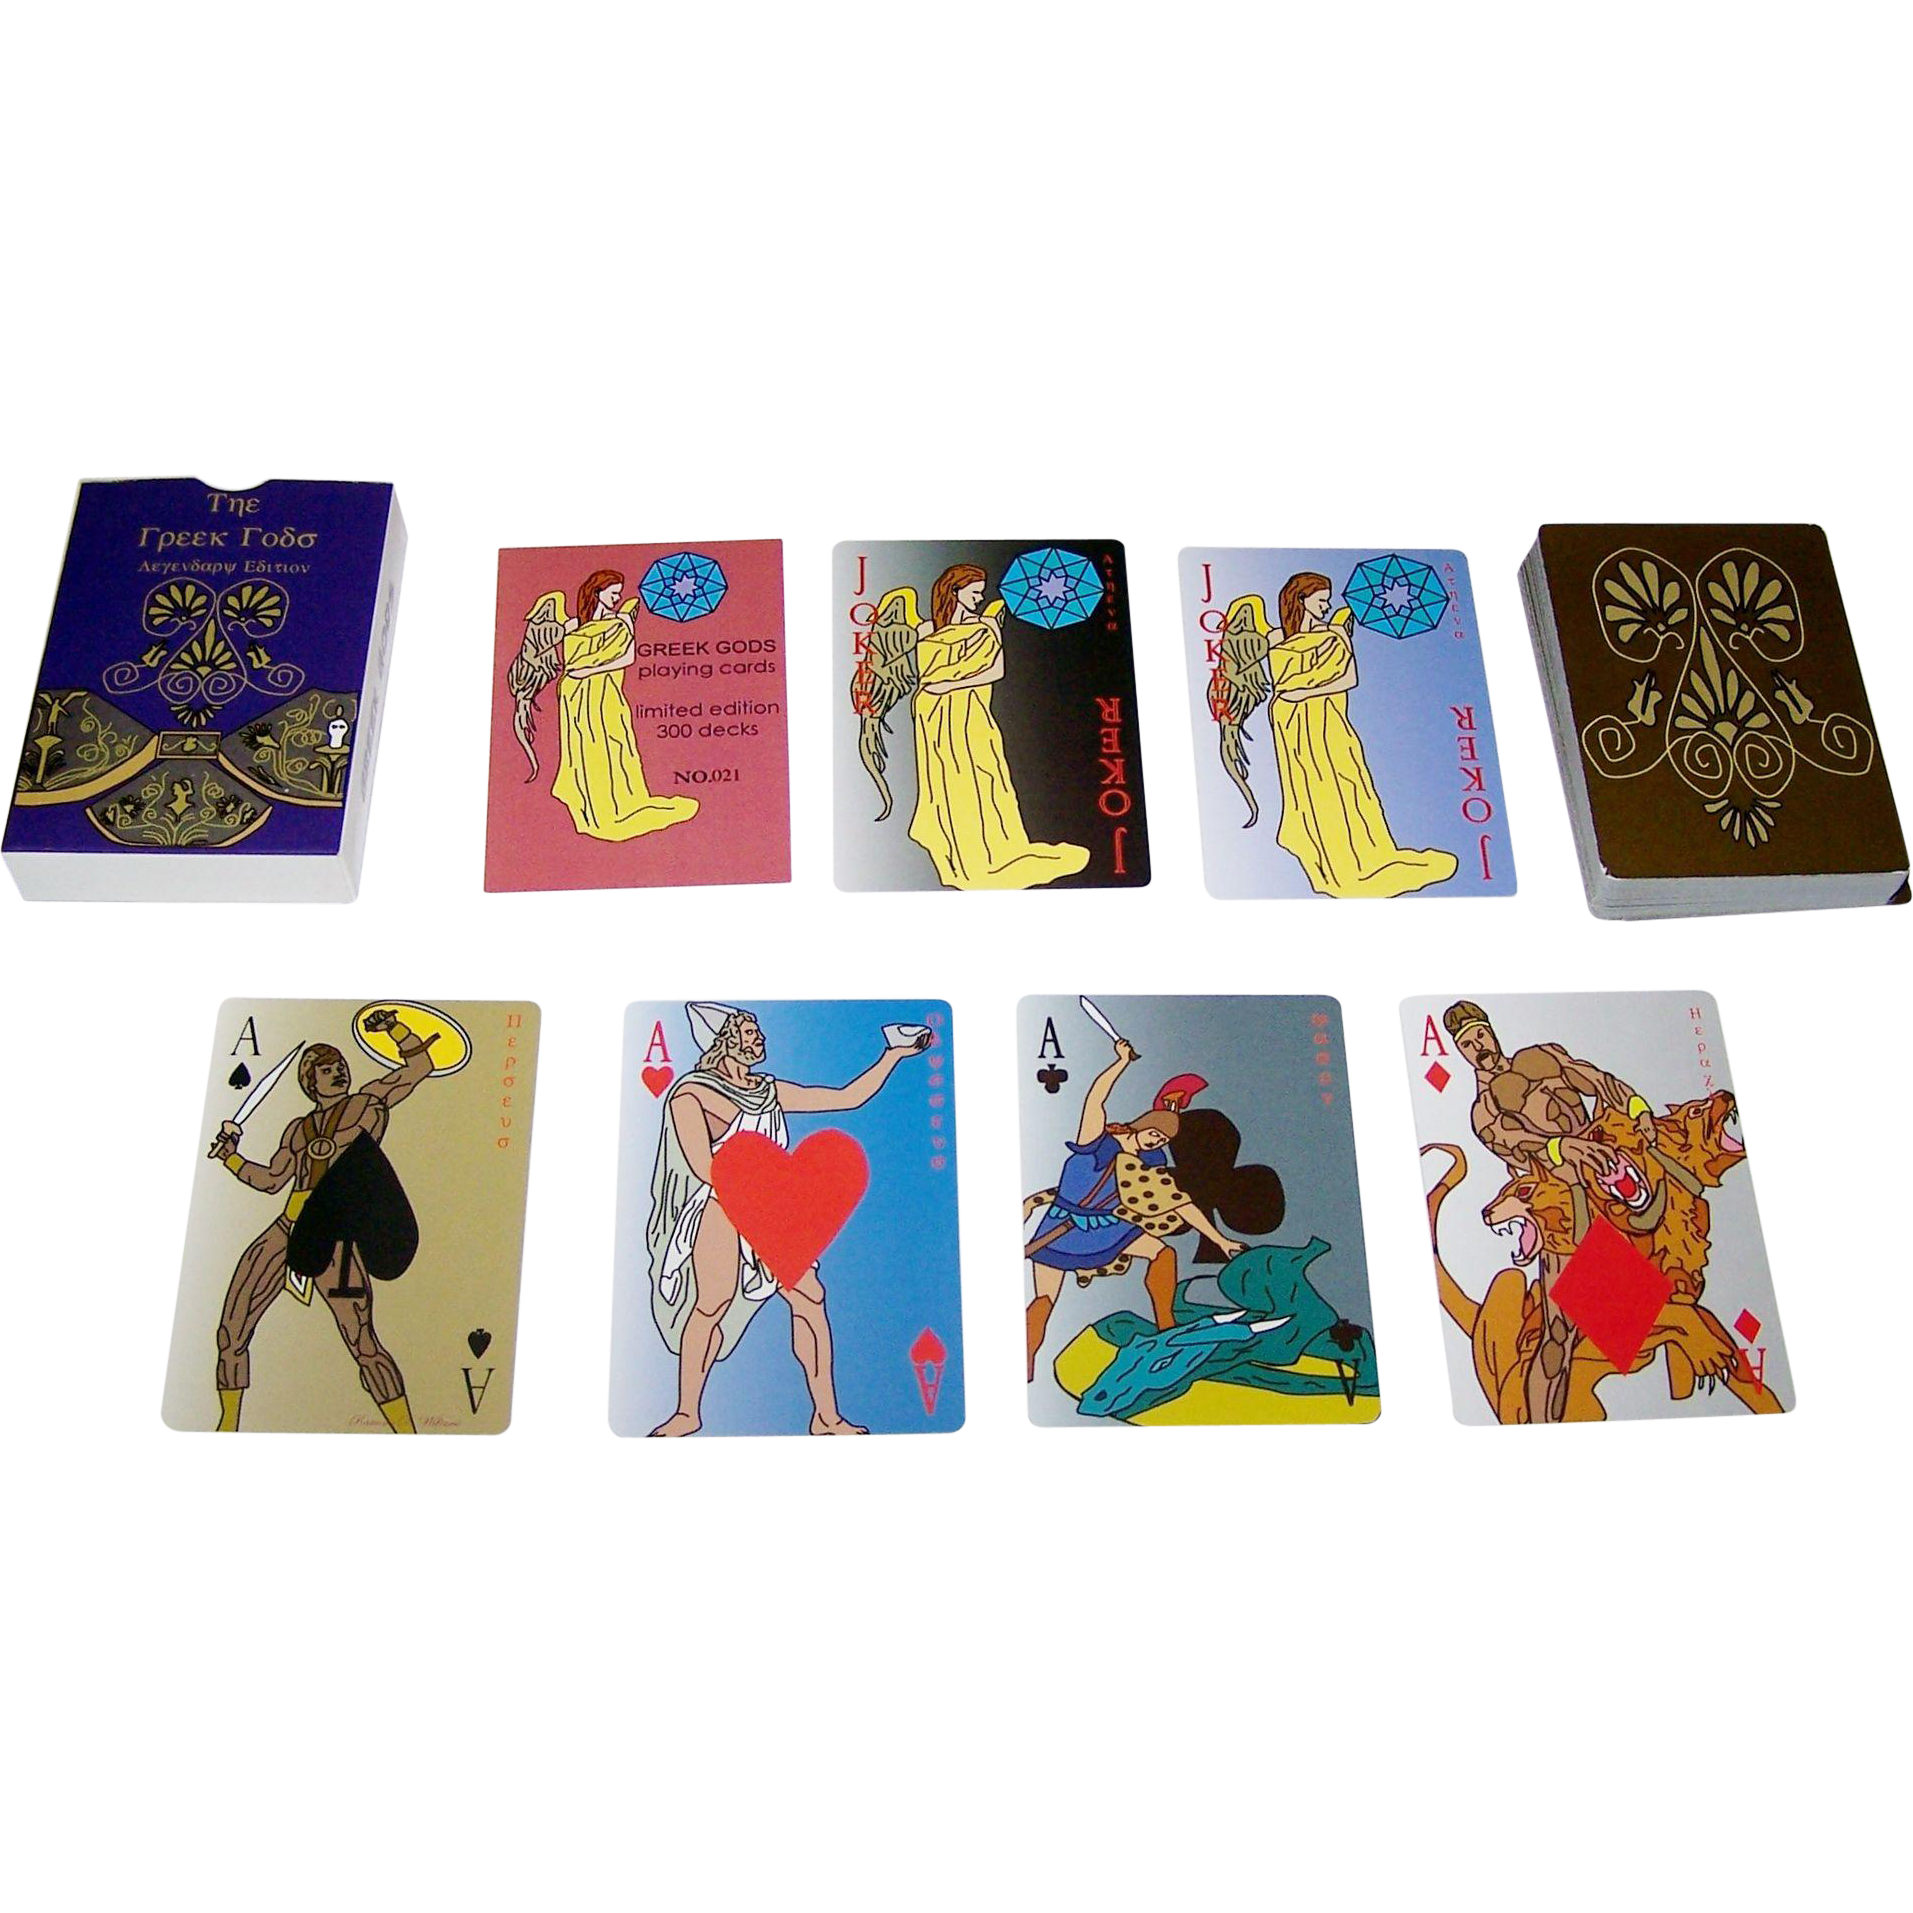 """Greek Gods"" Playing Cards, Ltd. Edition (21/300), Maker Unknown, Ramona Williams Designs"